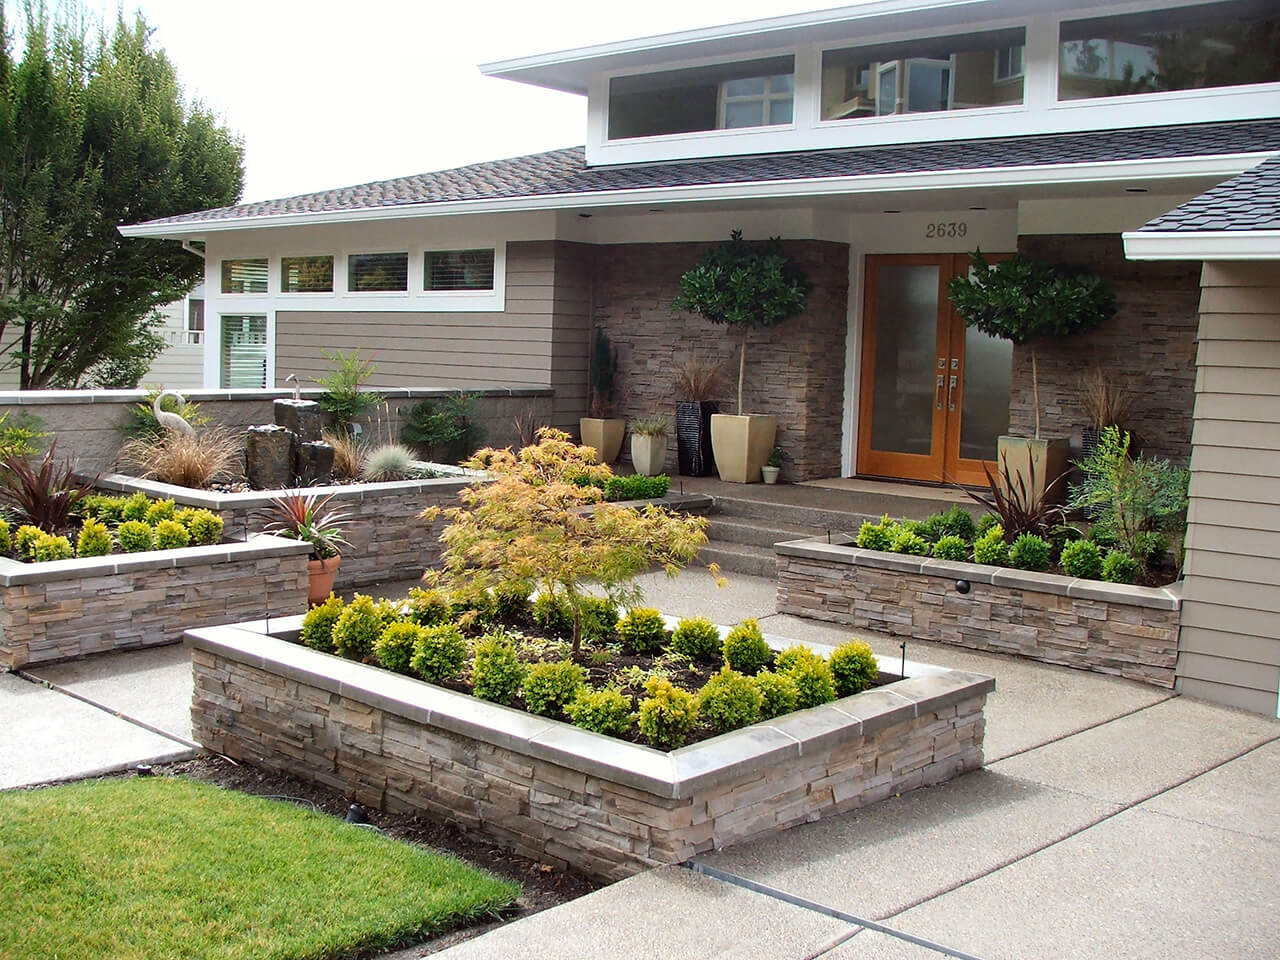 20 brilliant front garden landscaping ideas style motivation for Front lawn design ideas